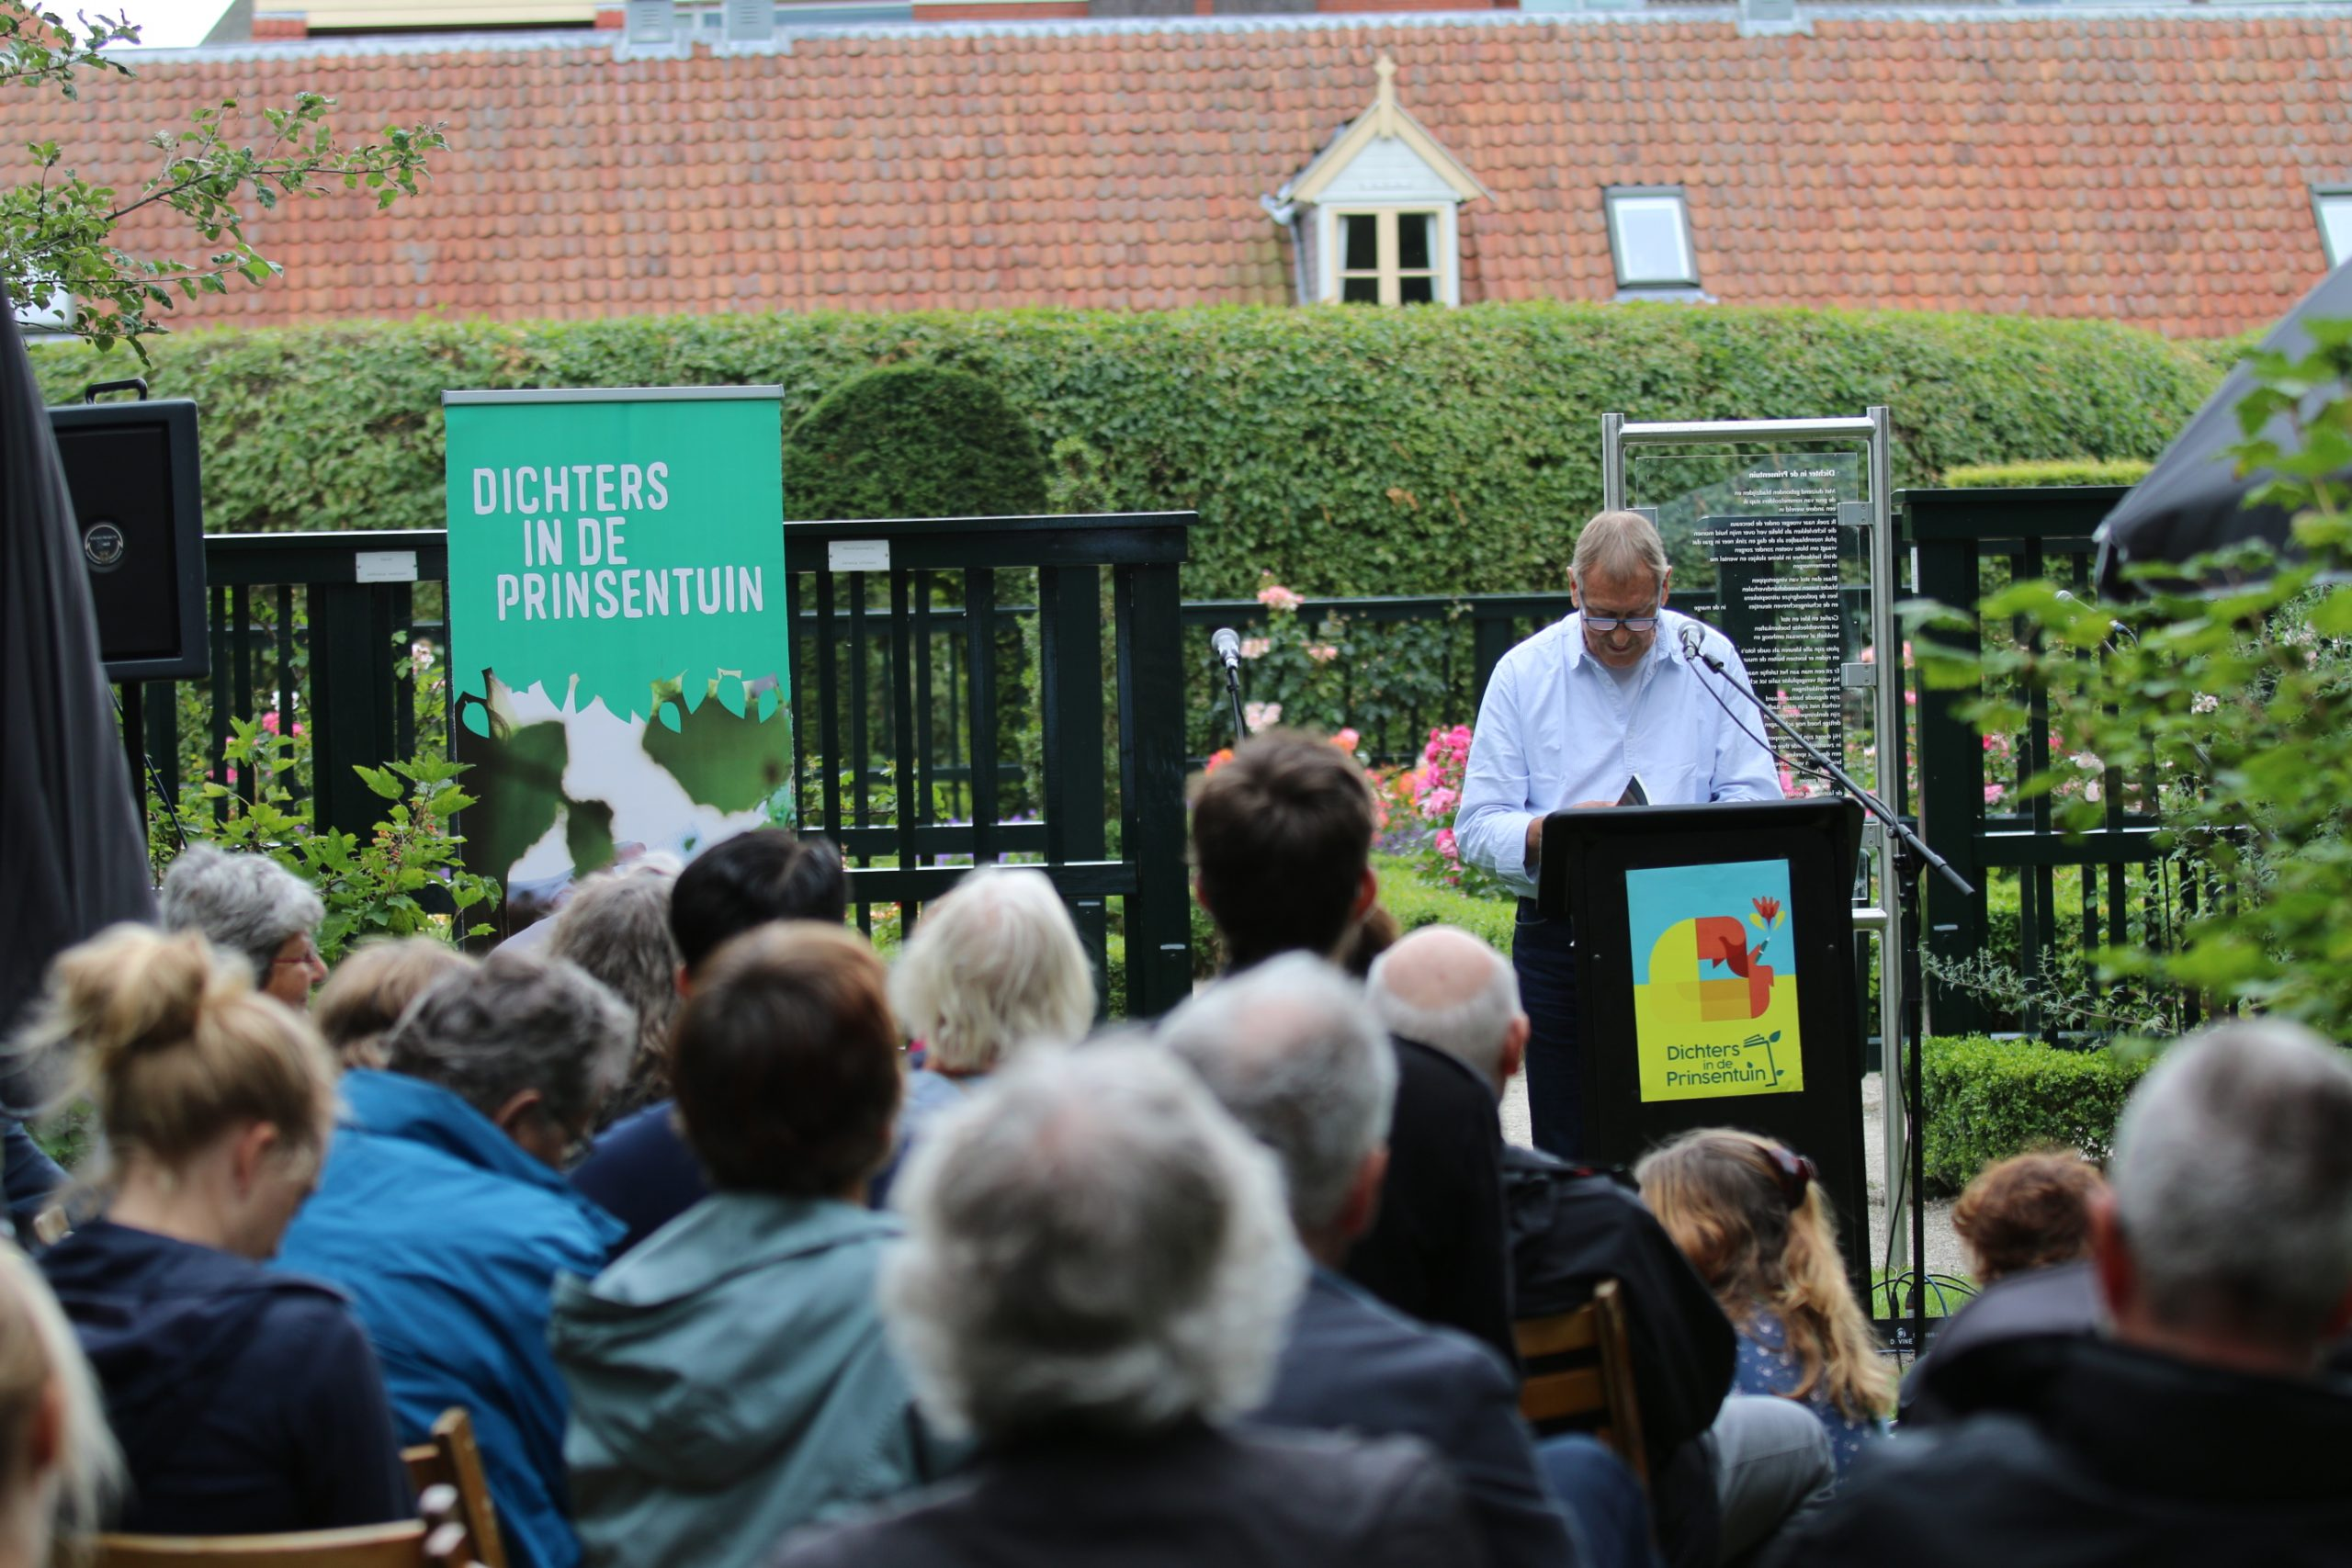 Poets in Prinsentuin will move to Hortus this year